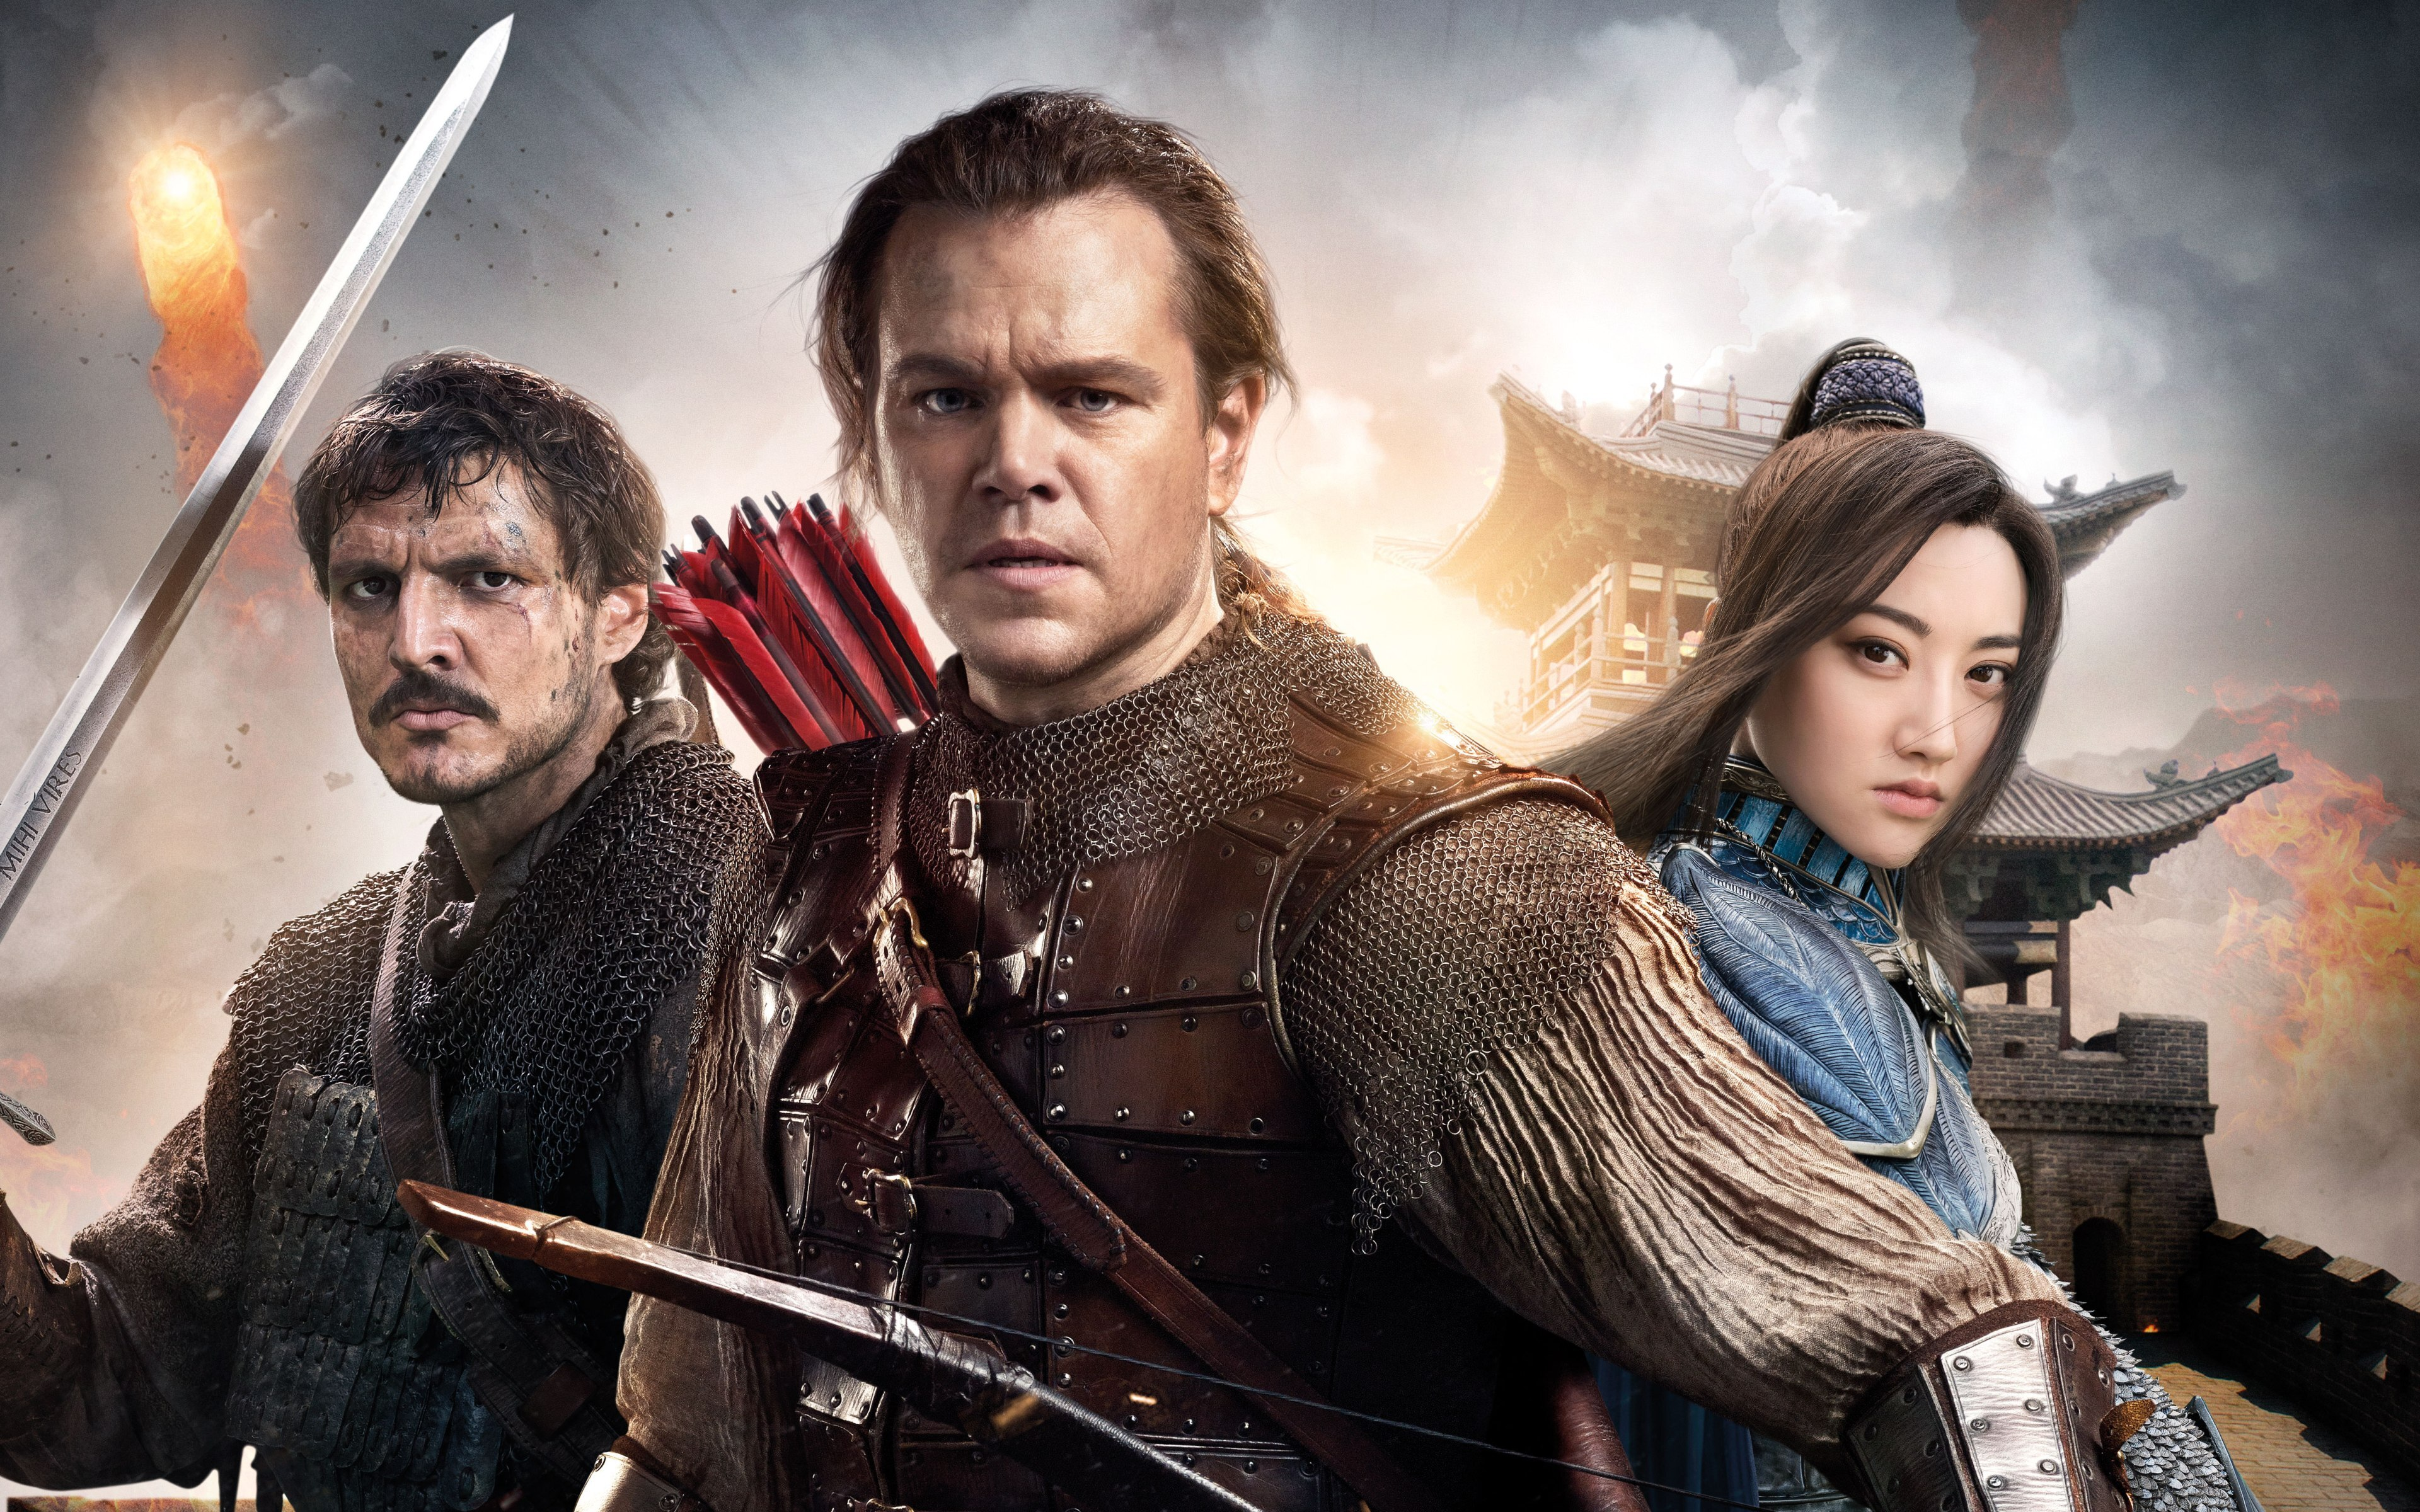 the-great-wall-movie-4k-sd.jpg